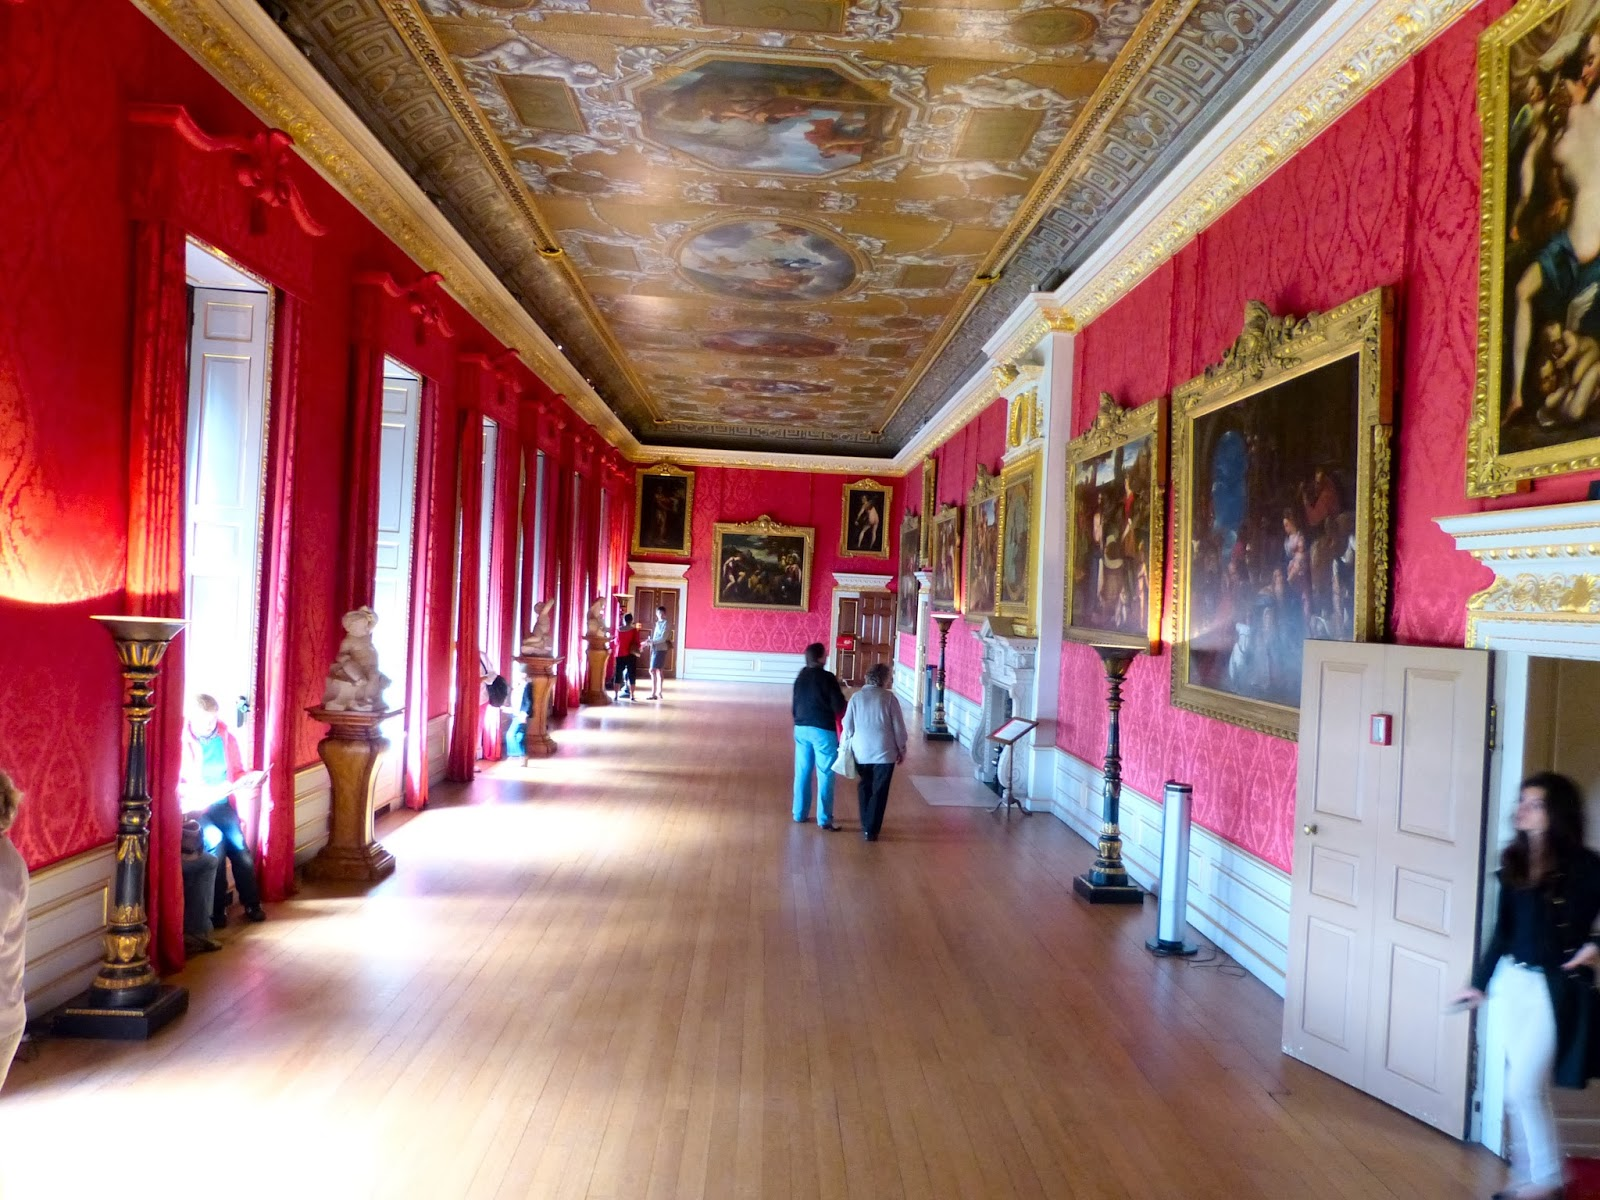 Regency history regency history s guide to kensington palace Kensington palace state rooms